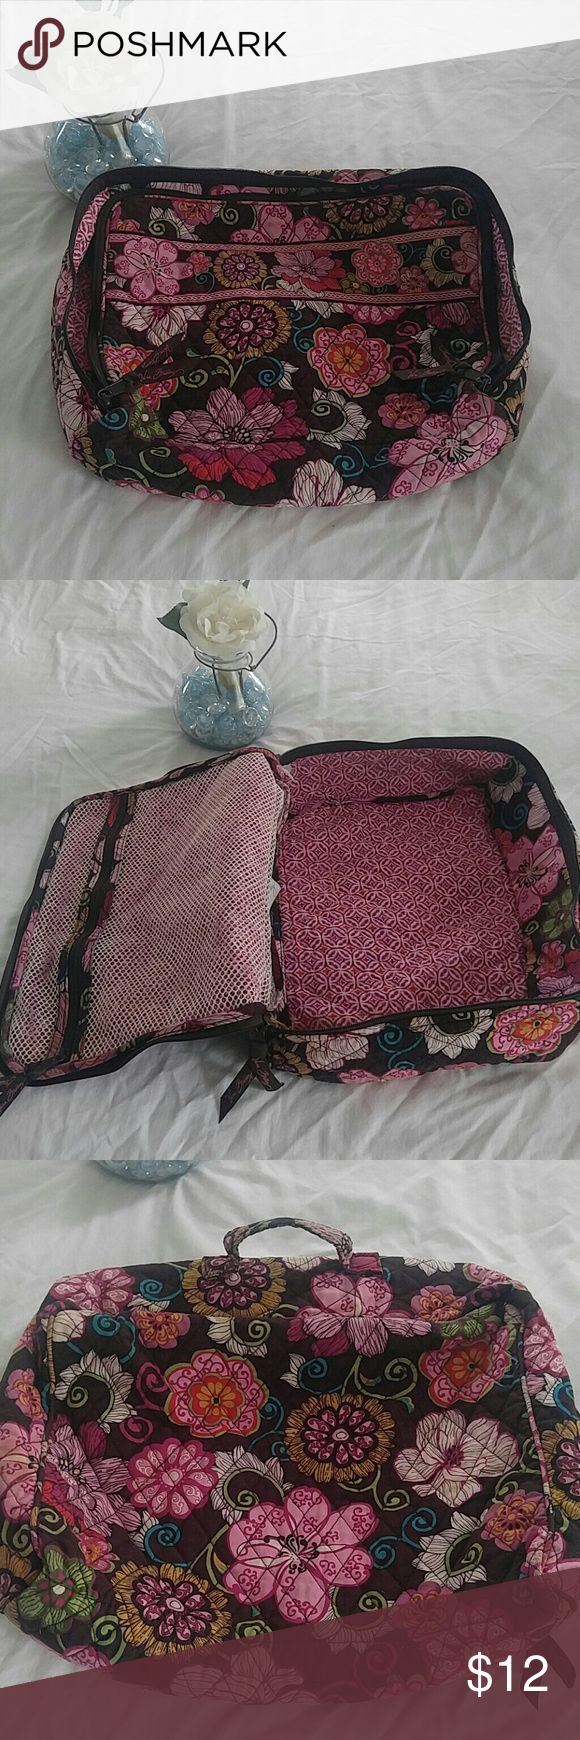 Vera Bradley travel bag Vera travel bag. Has signs of use (pictured) but still plenty of useful life left. If any questions or want more photos just ask. Offers welcomed! Vera Bradley Bags Travel Bags